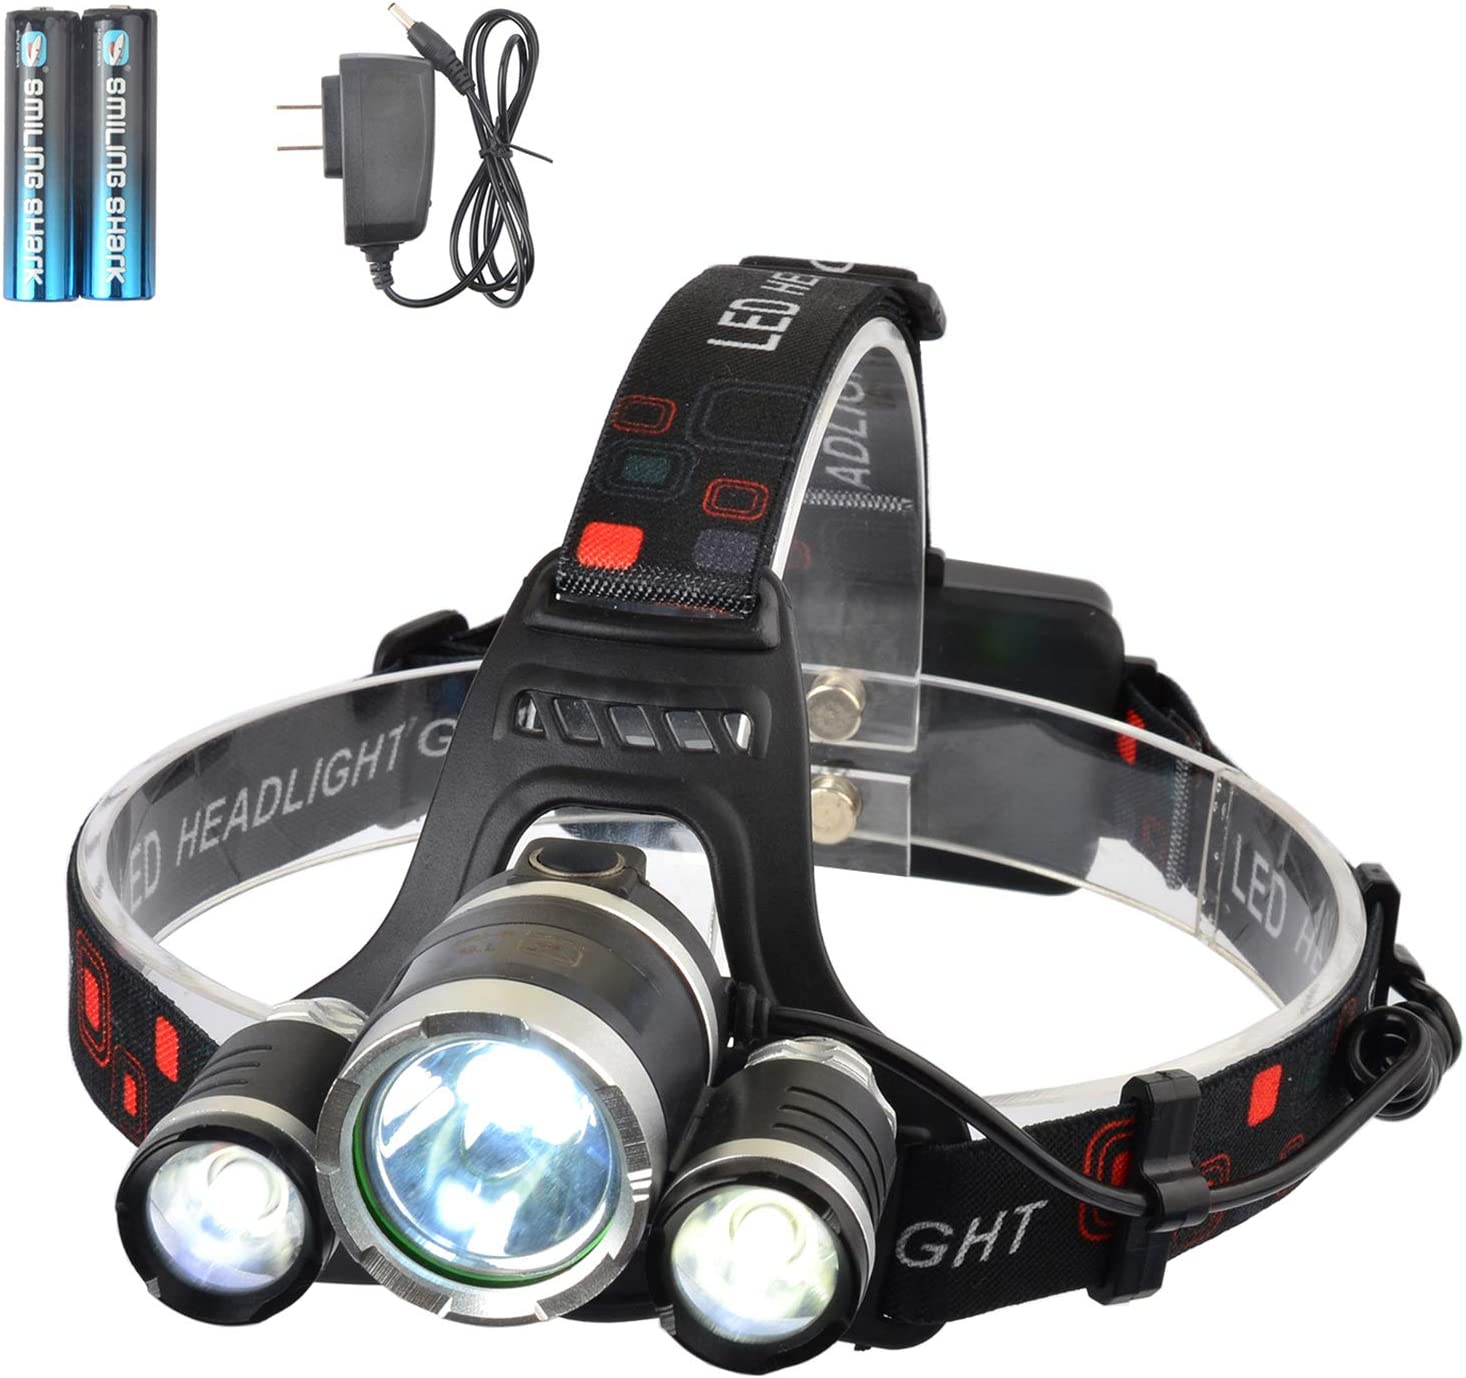 USB Rechargeable LED Headlamp Head Torch Flashlight Bright Headlight Work Lights